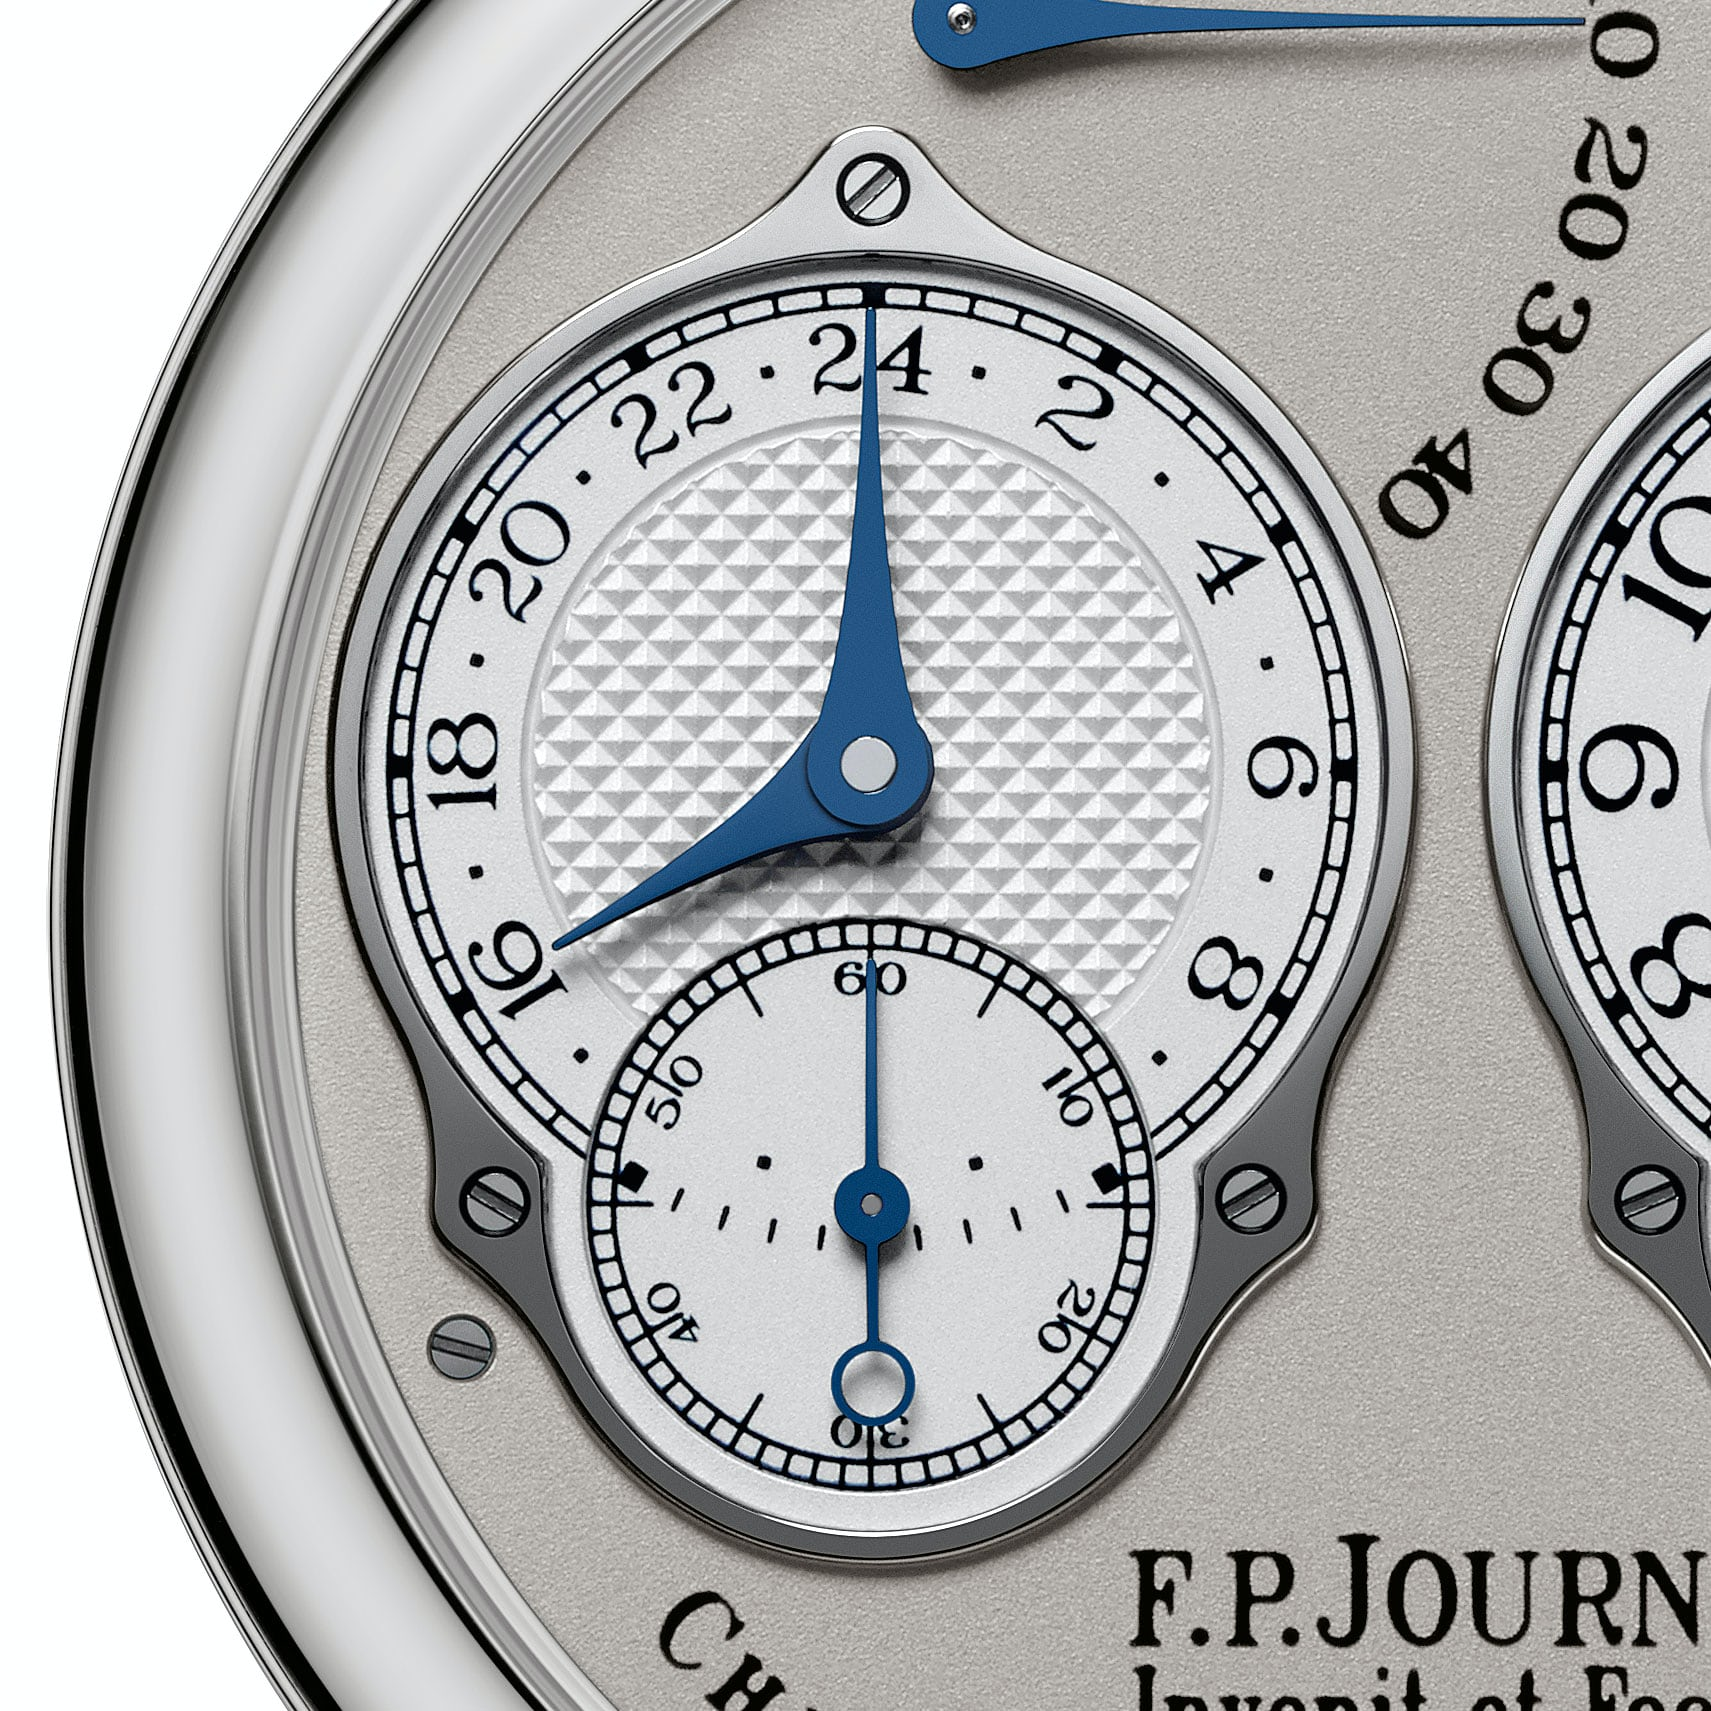 fp-journe-chronometre-a-resonance-24hours-display